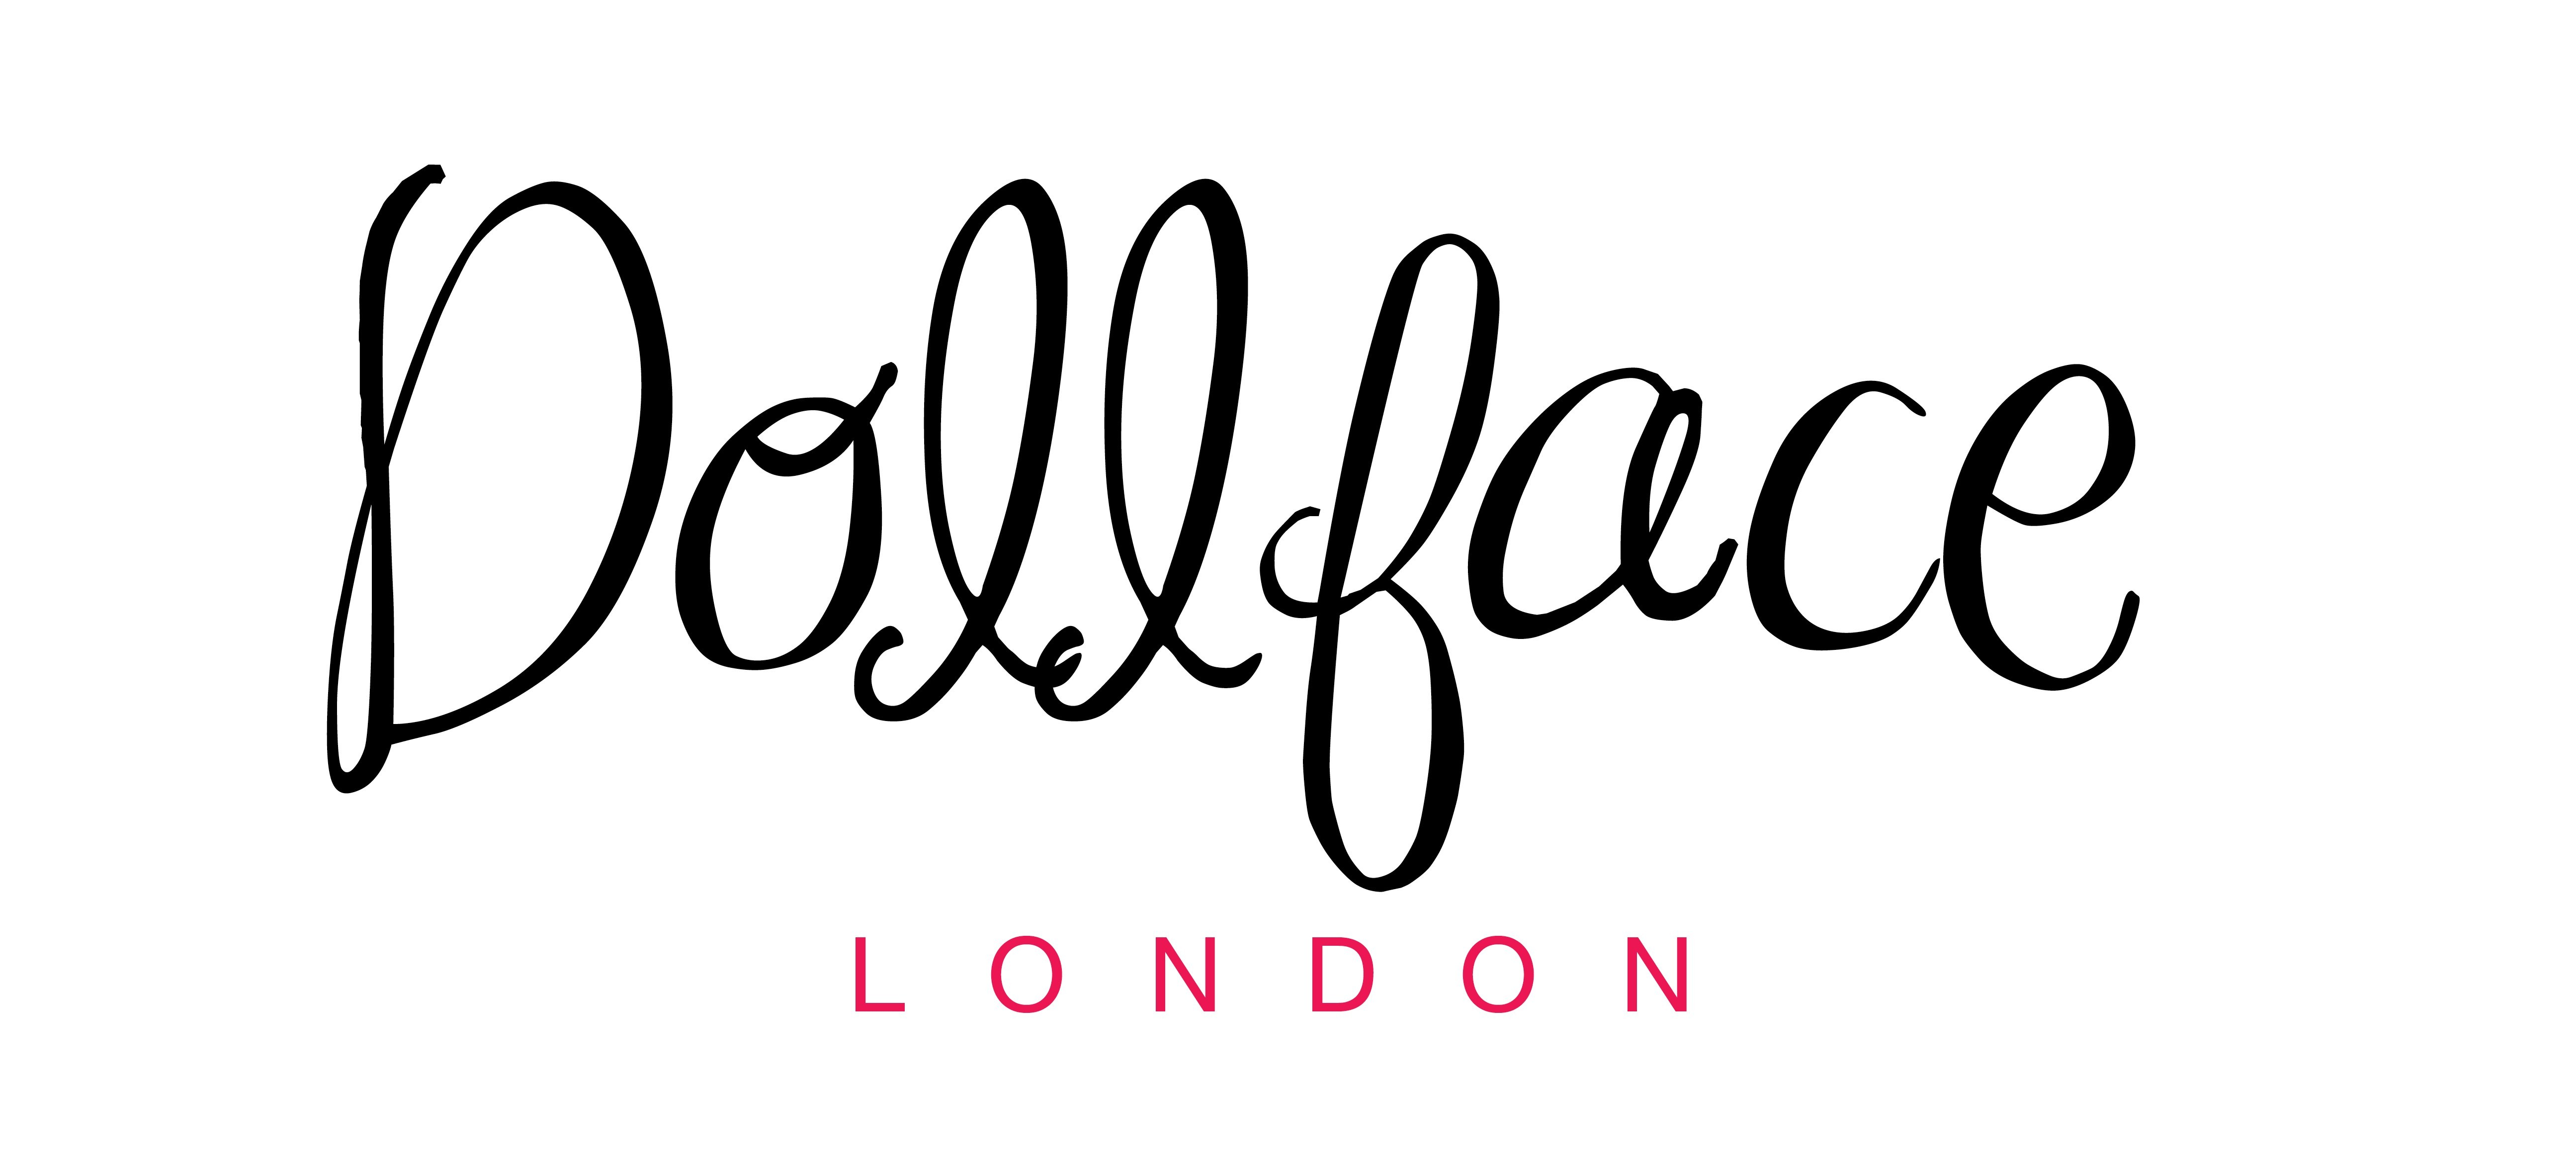 Urban Bling ✌| Collection - ✰ ☮ ✝ Dollface London Online Jewellery Boutique ✝ ☮ ✰